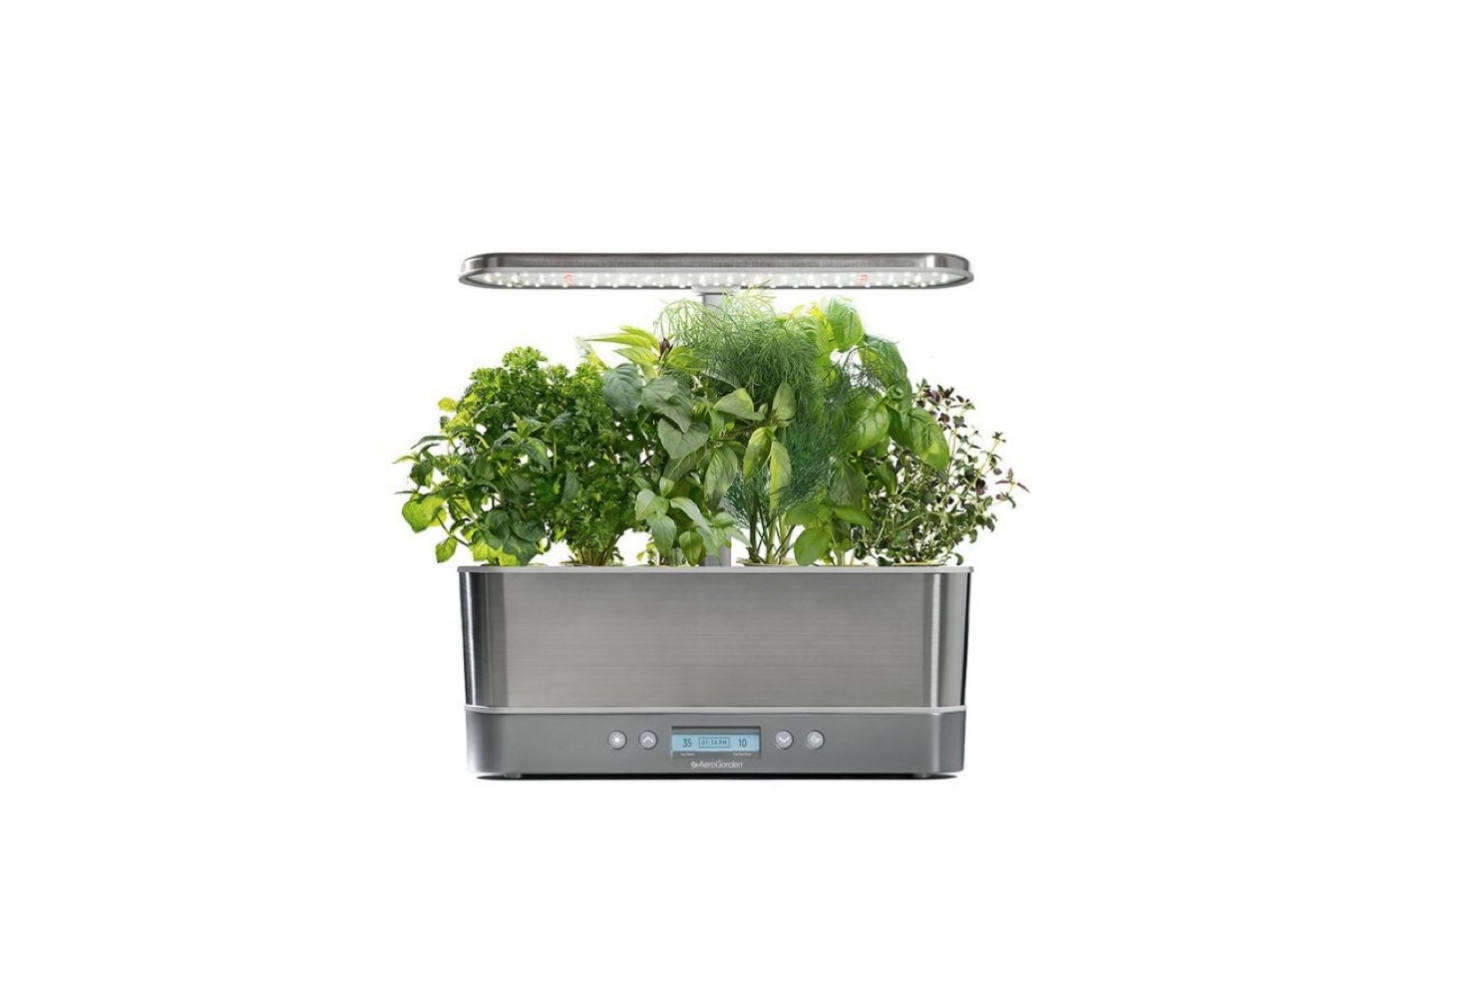 AeroGarden carries a variety of high-tech soil-less container gardens with grow lights that promise to grow plants five times faster than traditional soil-based gardens. The countertop-friendly Harvest Elite Slim (pictured) is $3.96; it can grow up to six plants. AeroGarden offers dozen of seed kits; I&#8